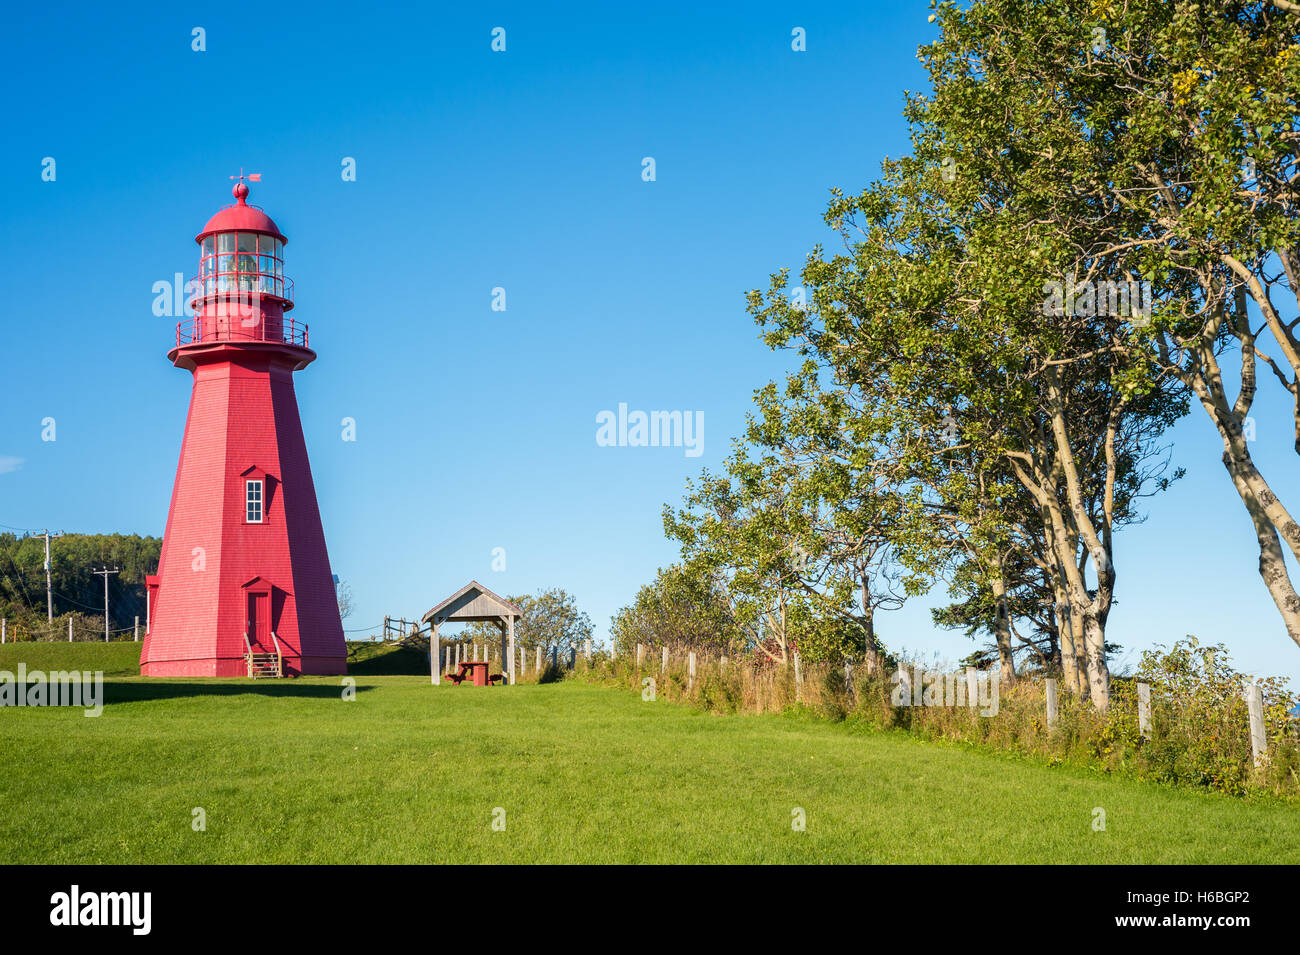 Red Lighthouse in La Martre, Quebec, Canada (Gaspe Peninsula) - Stock Image